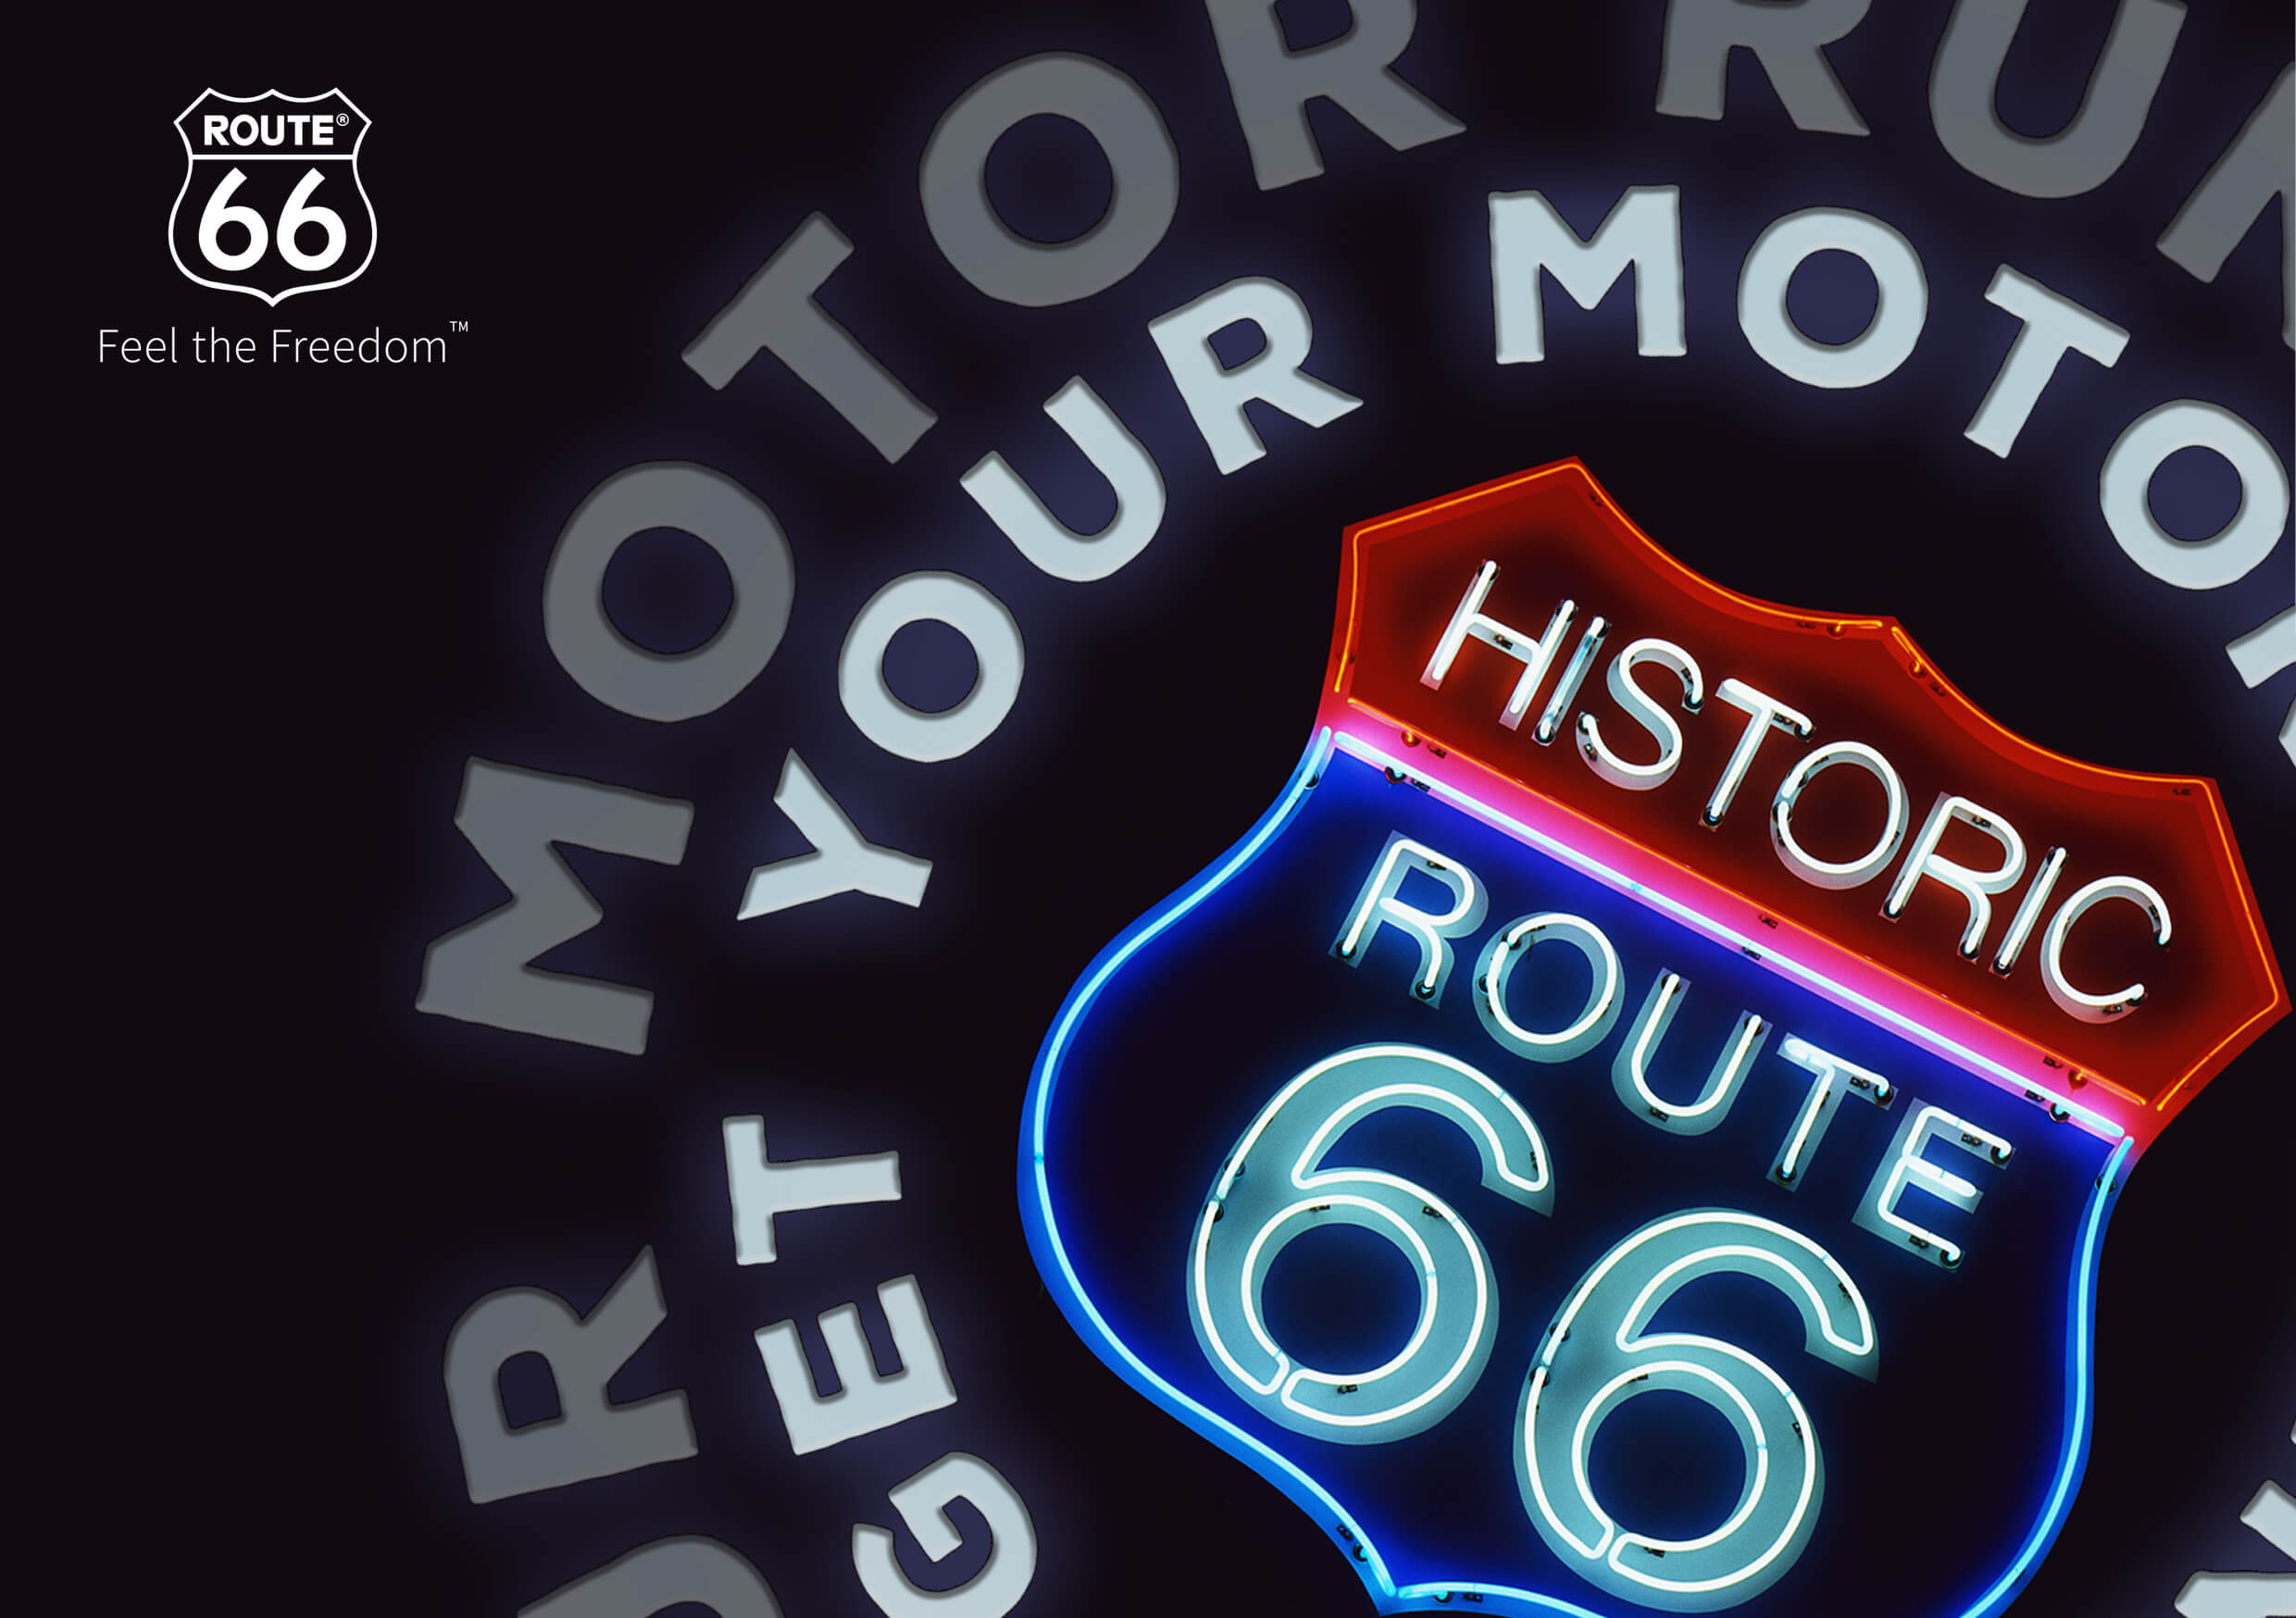 Two New Partners Go Down Route 66 image